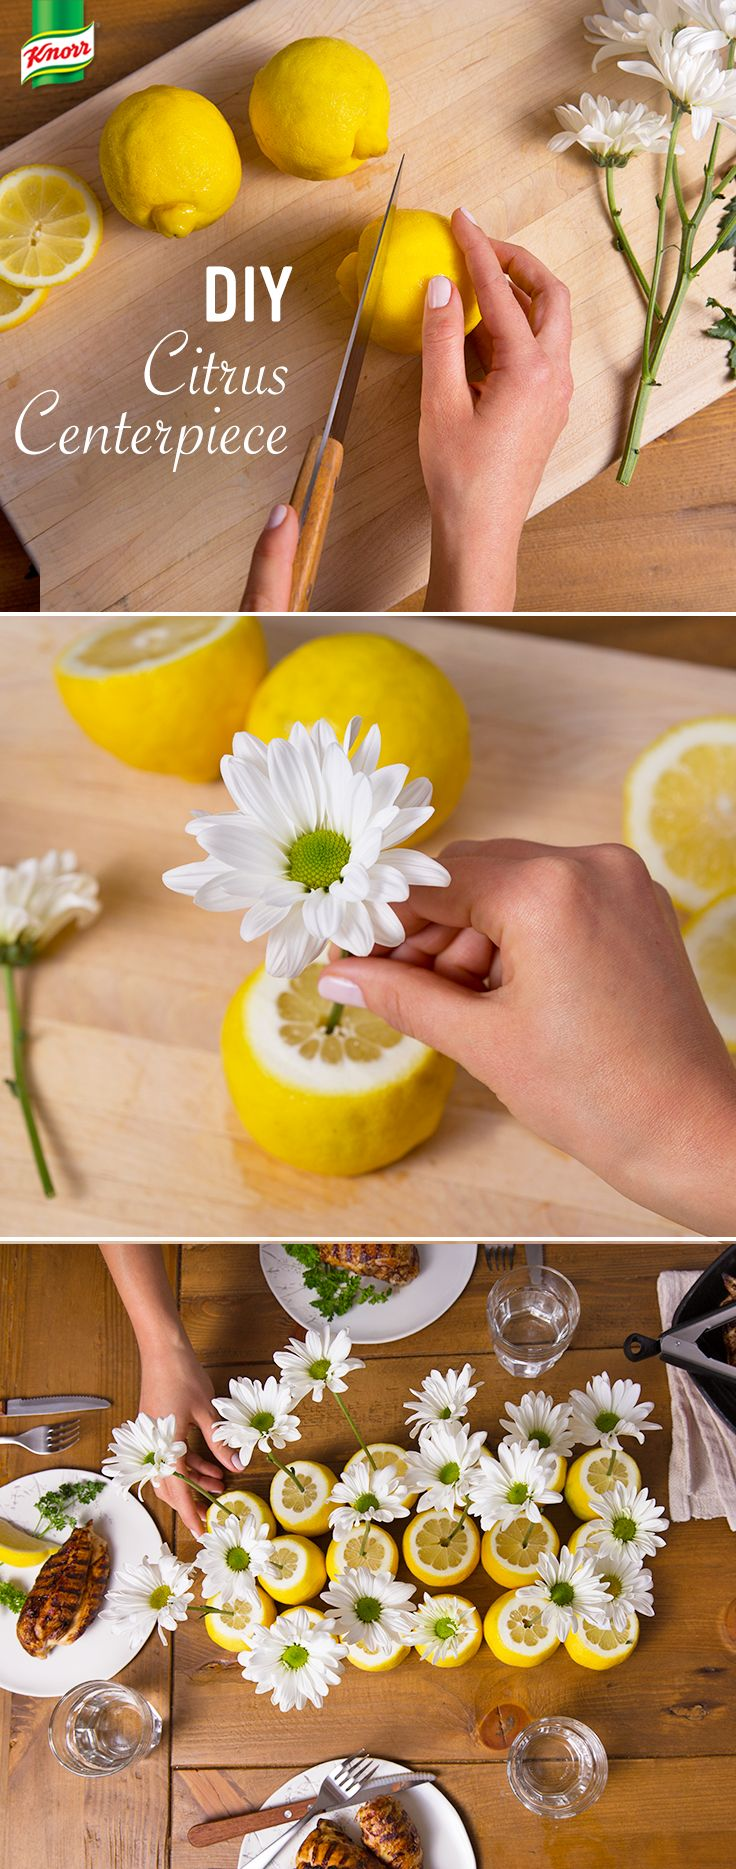 Want a show-stopping yet simple party table decorating idea? Knorr knows the best summer season centerpiece. Place your favorite flower into an orange, lemon, or lime. Create a fragrant bouquet with an assortment of floral items and different citrus fruit. What an easy DIY!